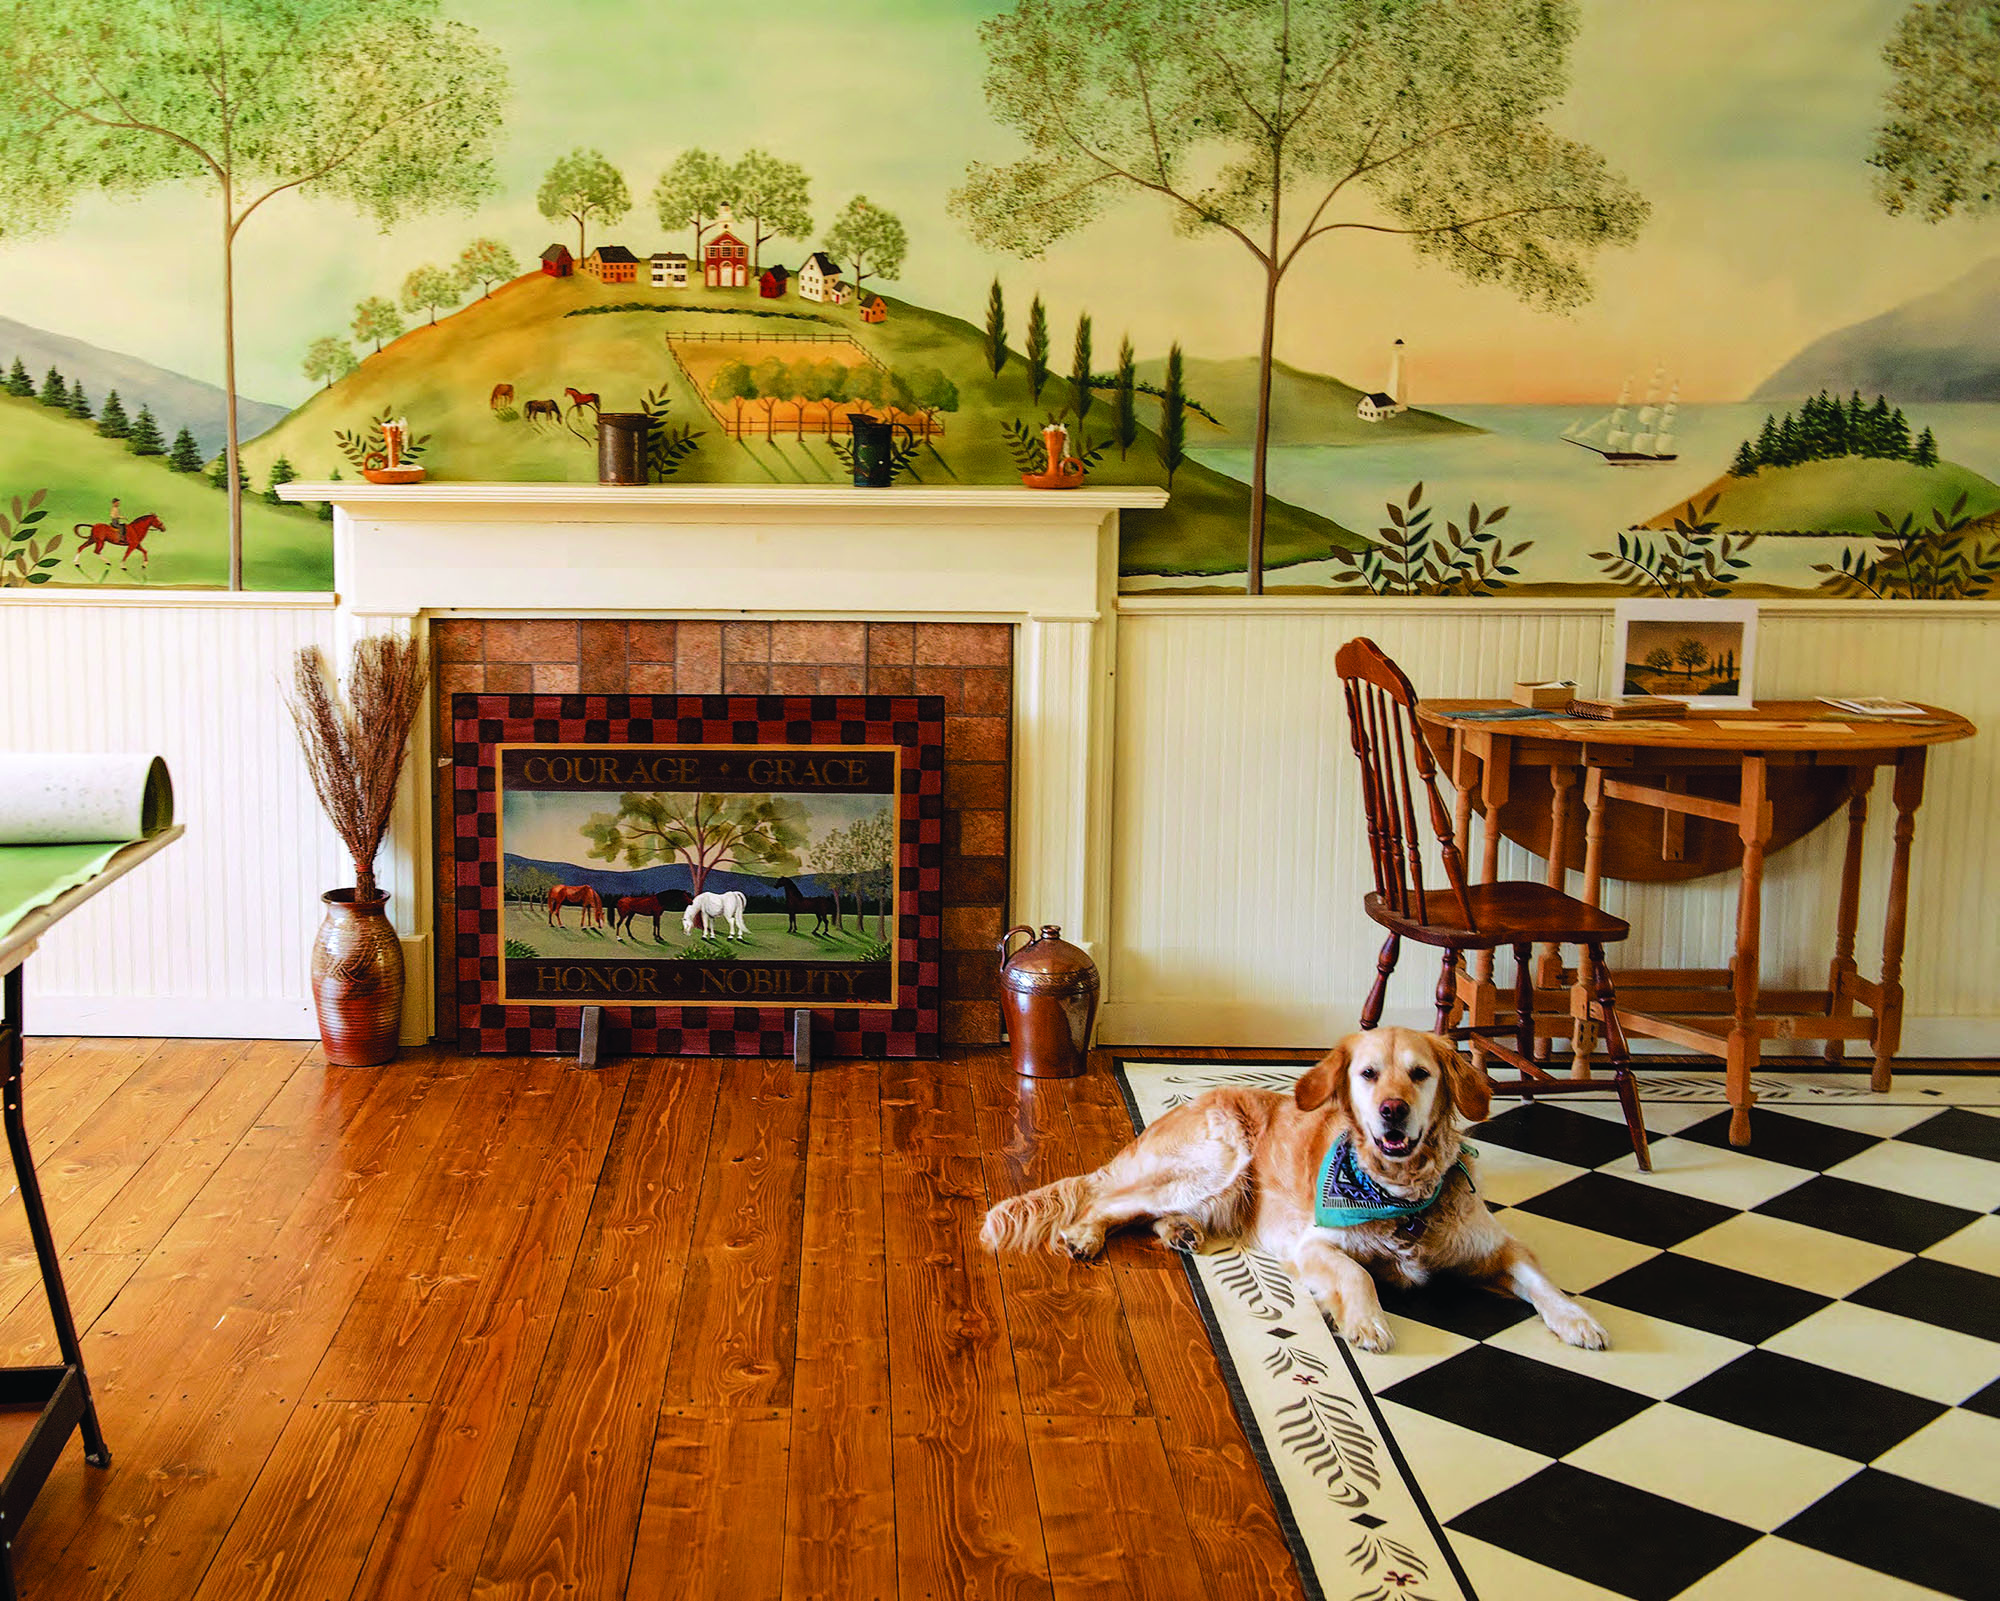 A hand-painted pastoral fireboard by Lisa Curry Mair of Canvasworks Designs complements a mural by the same artist.